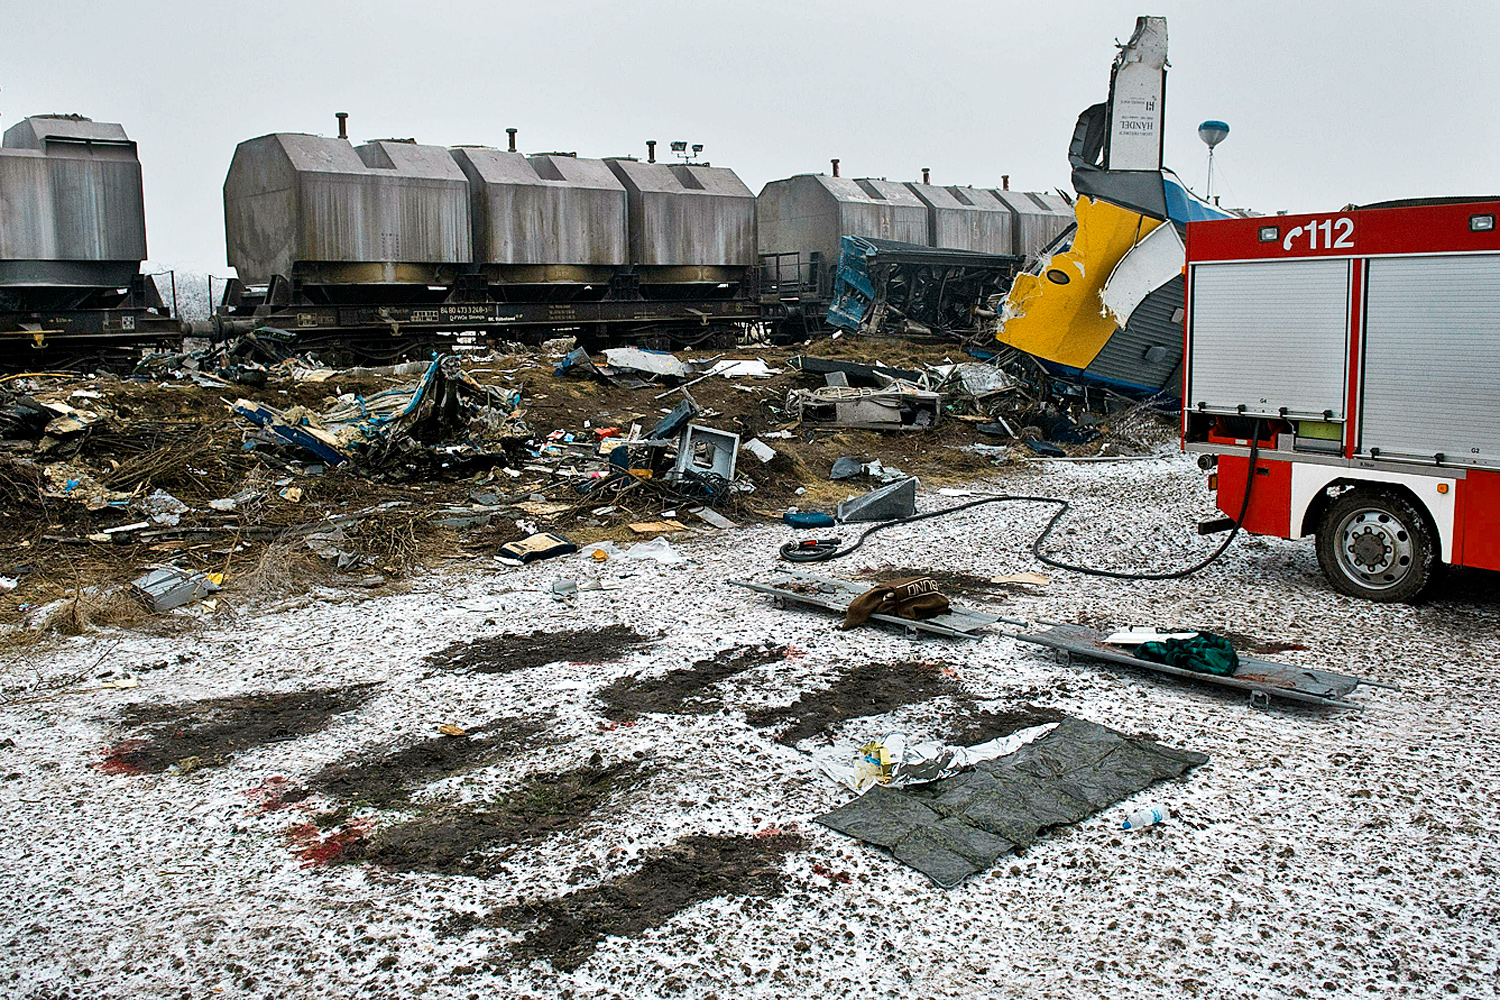 January 30, 2011. The outline of 10 bodies, the casualtieso f a train crash, are seen in the melted snow on the scene of the accident in Hordorf, Germany.